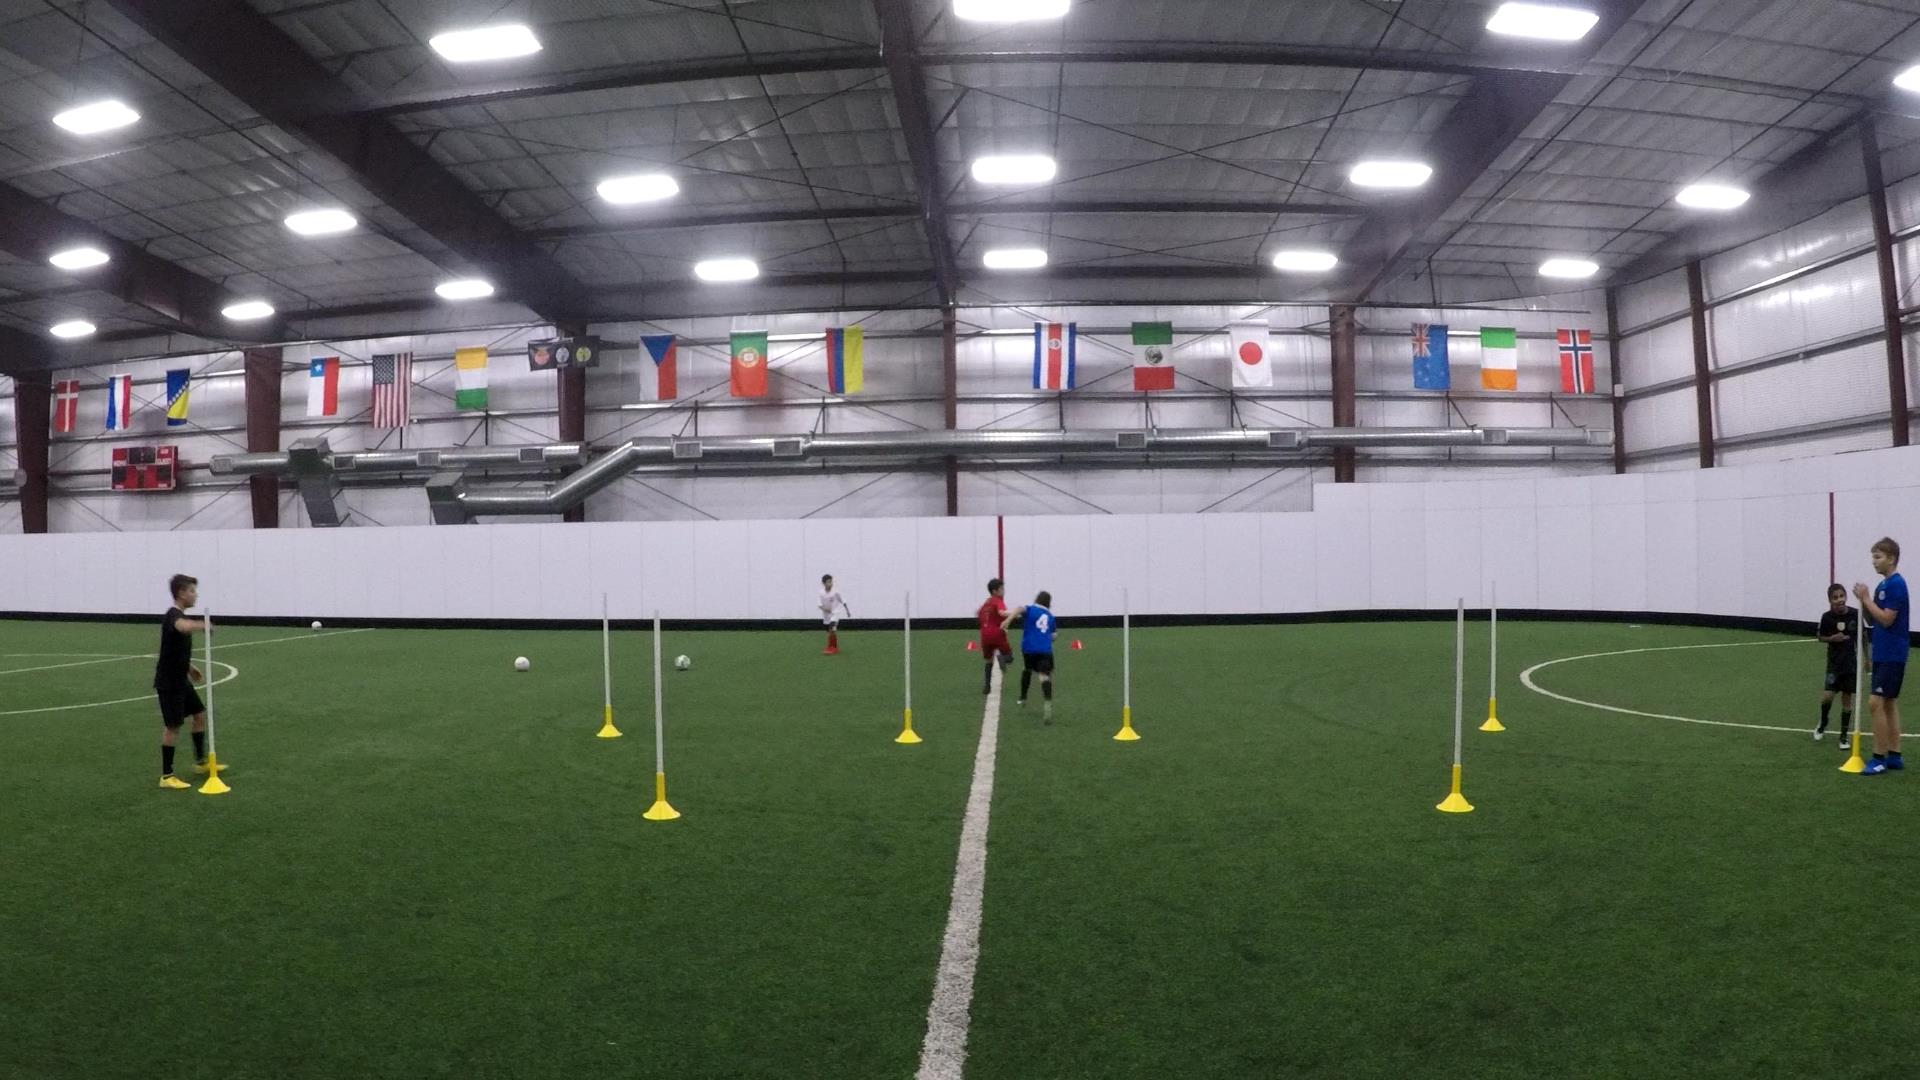 Youth Soccer Training